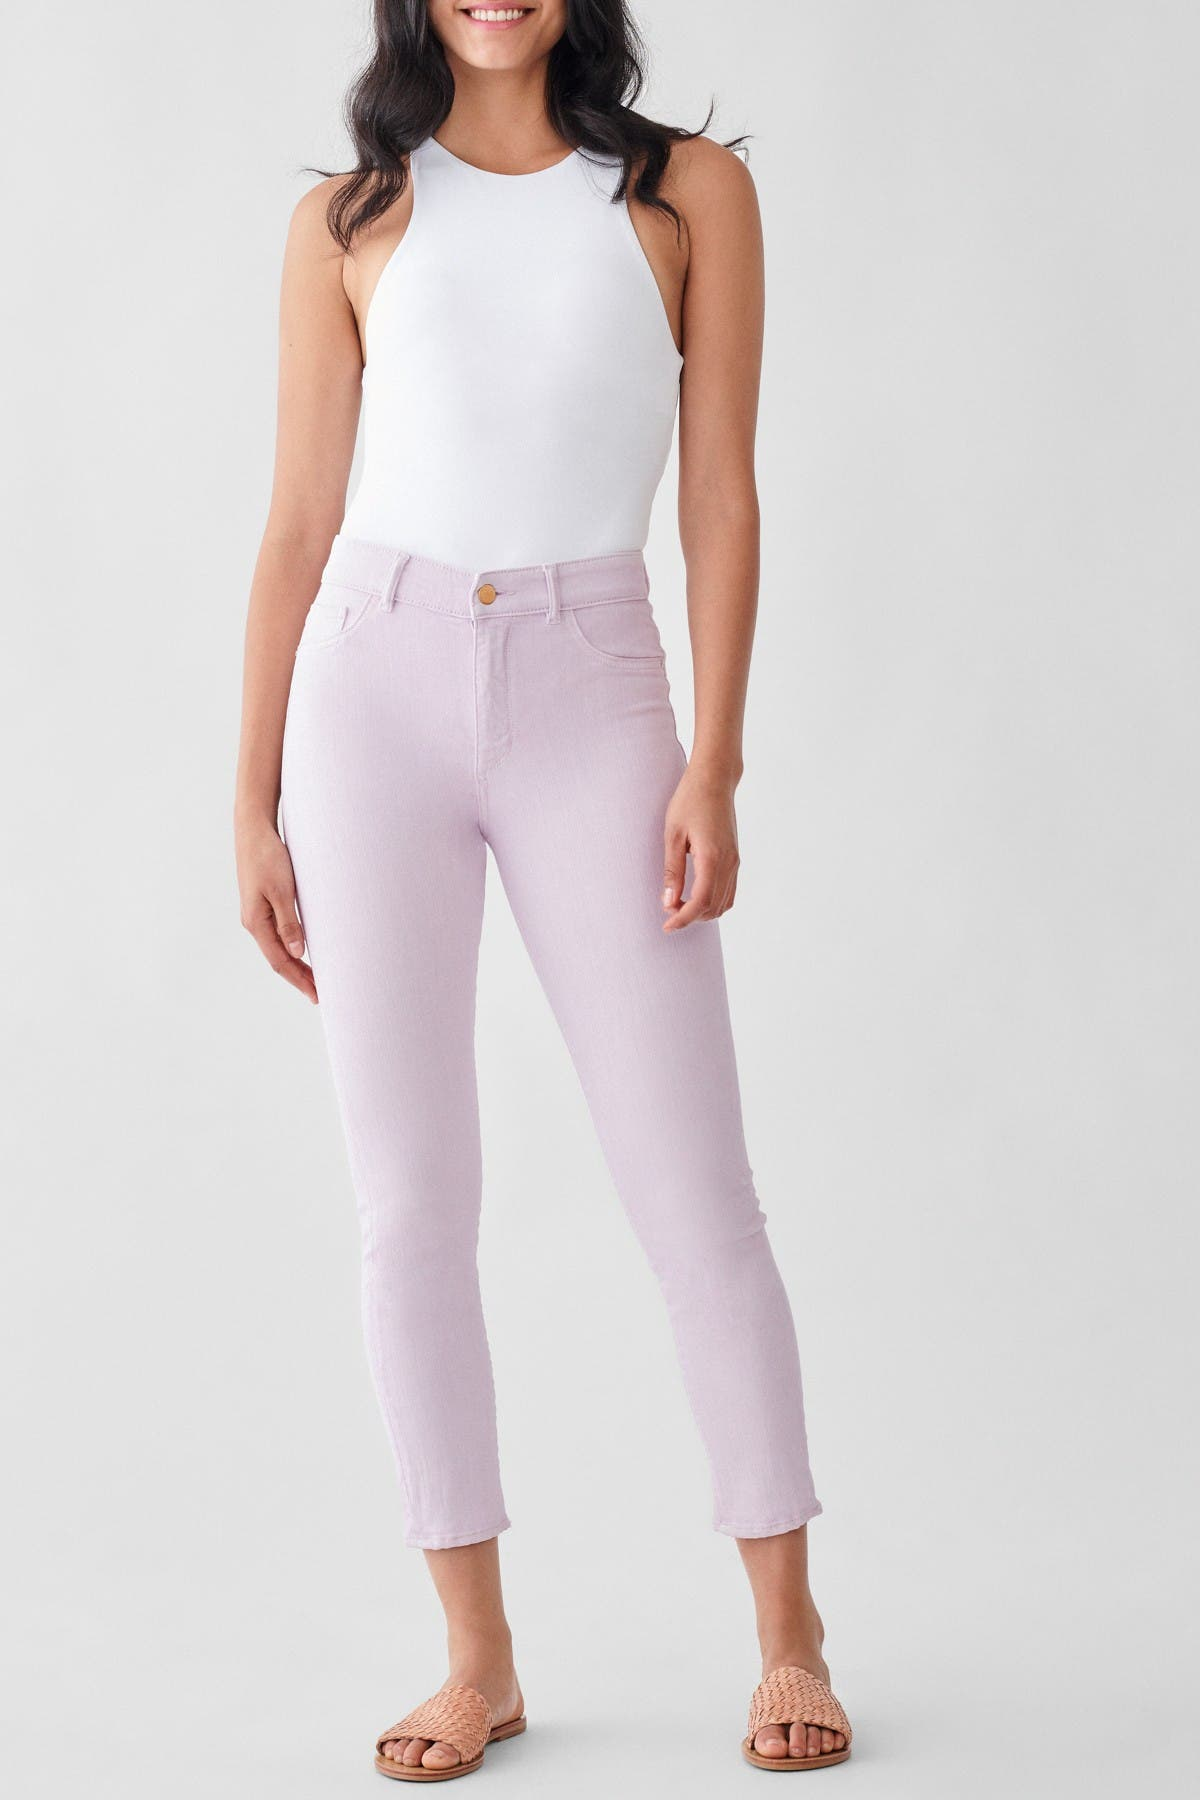 Image of DL1961 Farrow Ankle High Rise Skinny Jeans